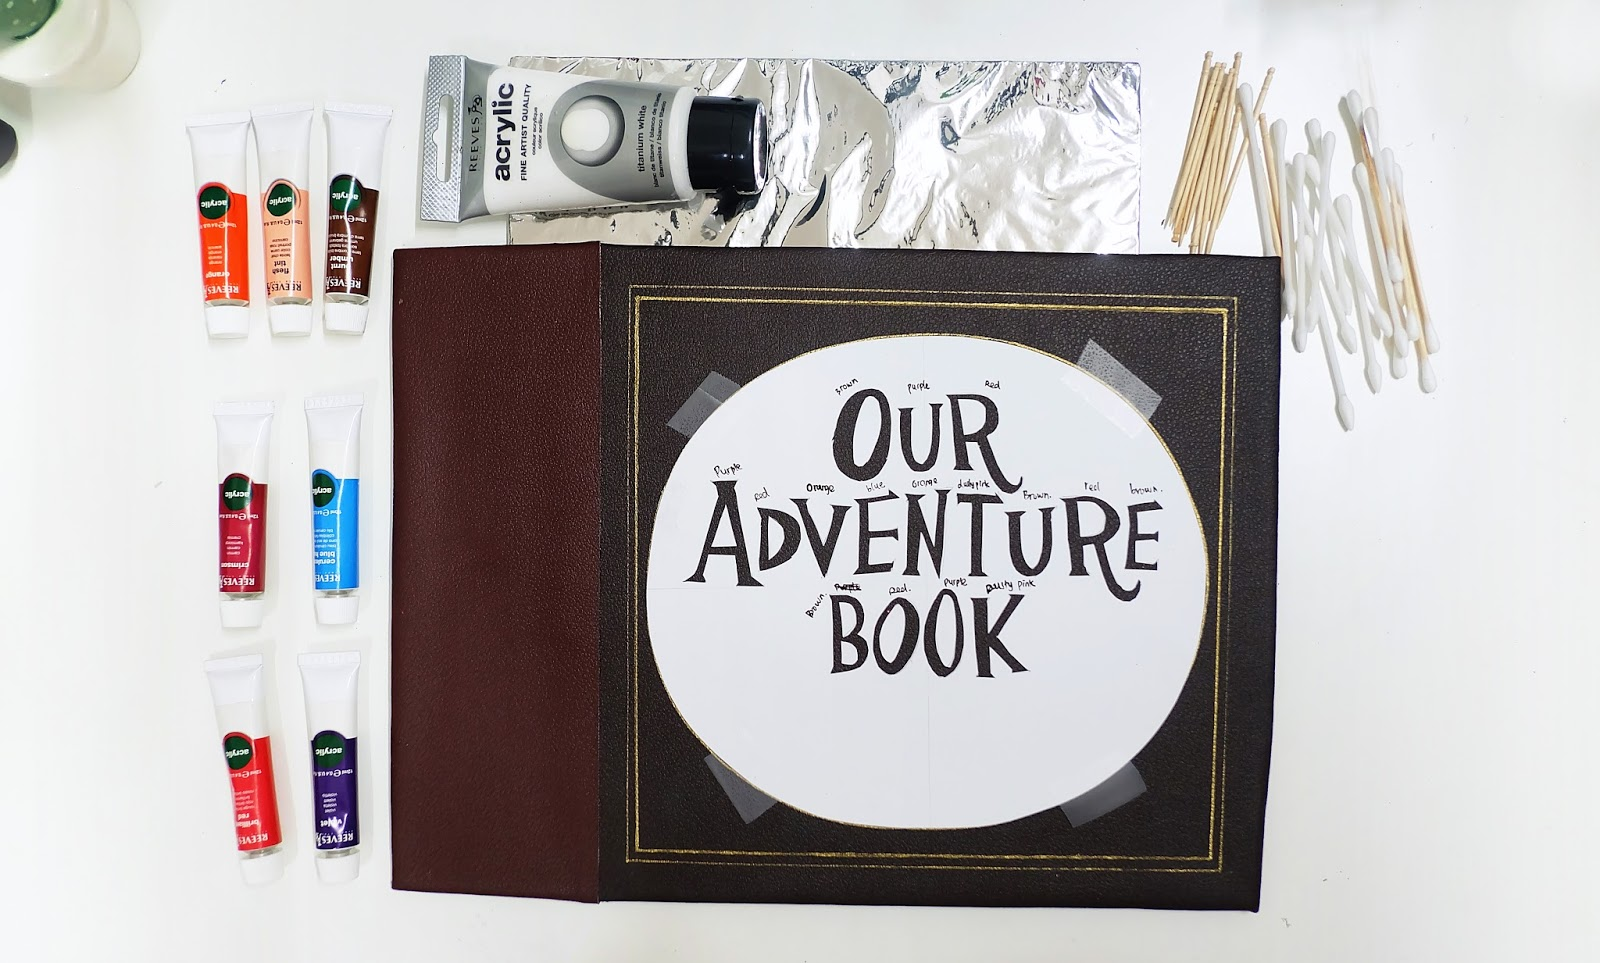 photo regarding Our Adventure Book Printable identify Do it yourself Our Experience E book include Impressed versus Disney Pixar Up